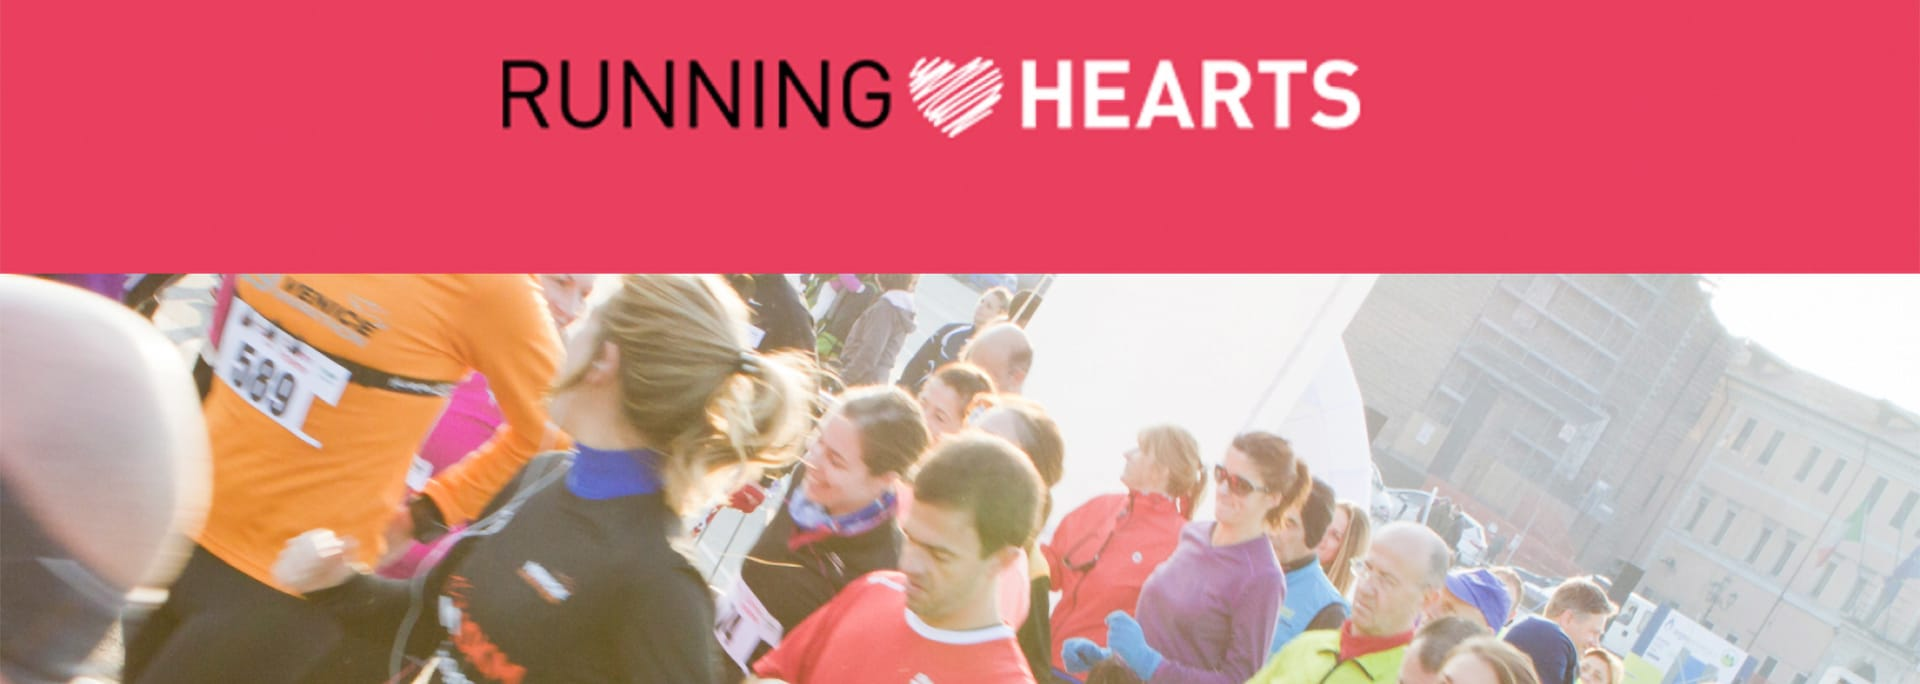 hero-e-running-heart